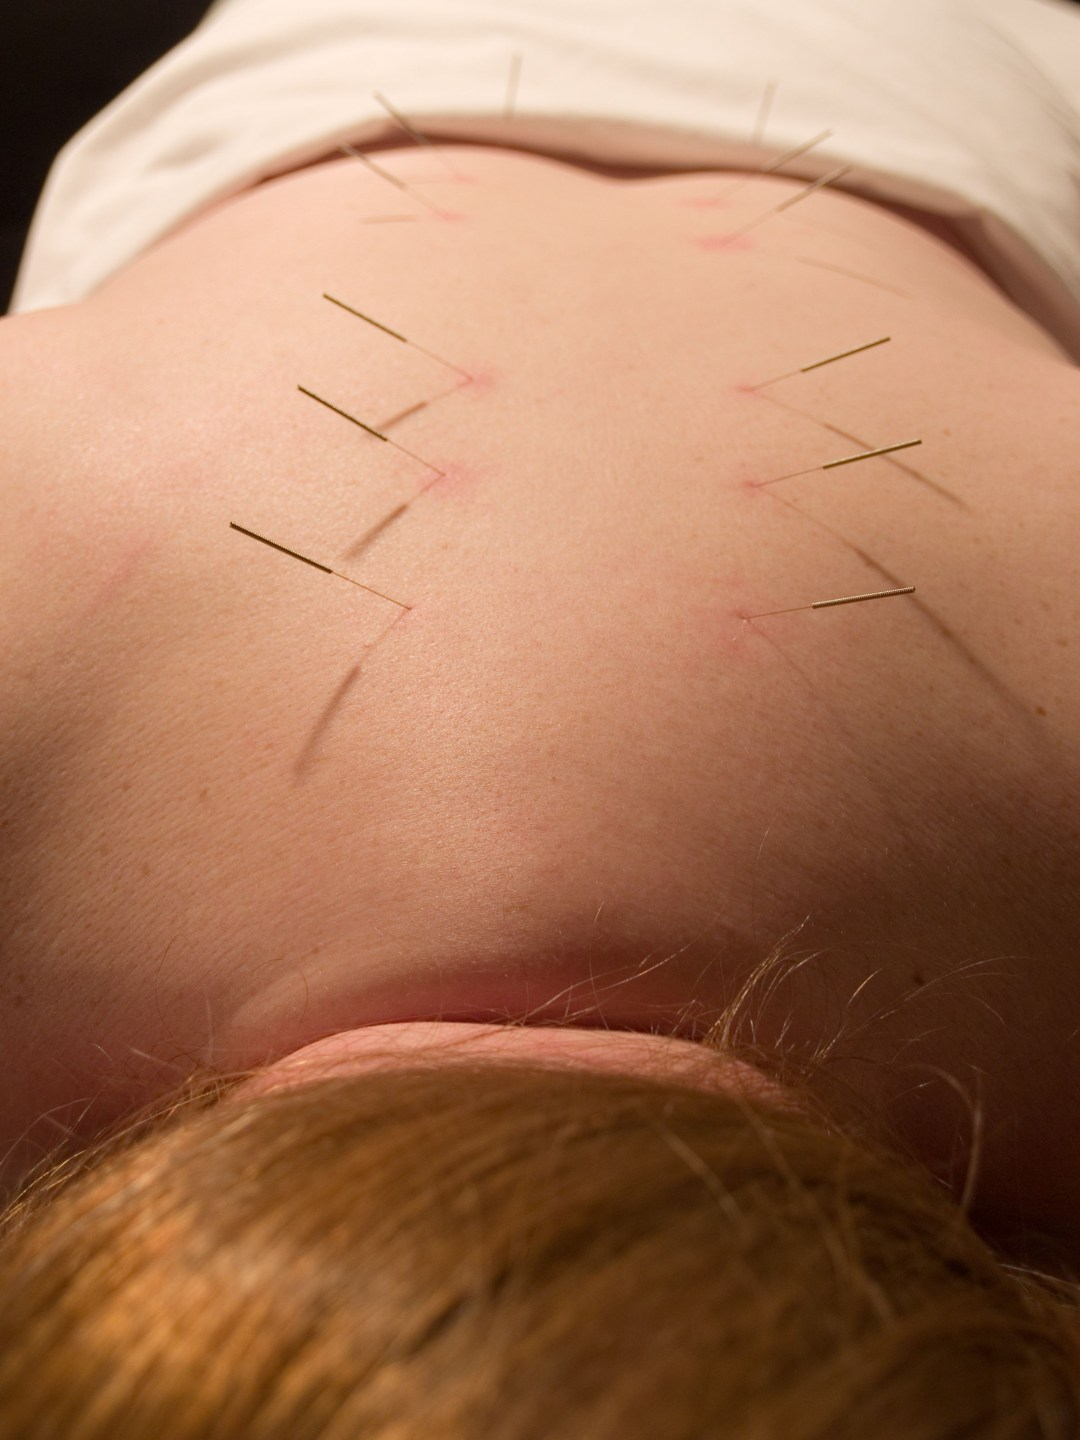 The Eastern or Asian acupuncture medical treatment said to prevent or treat a variety of medical ailments including pain.